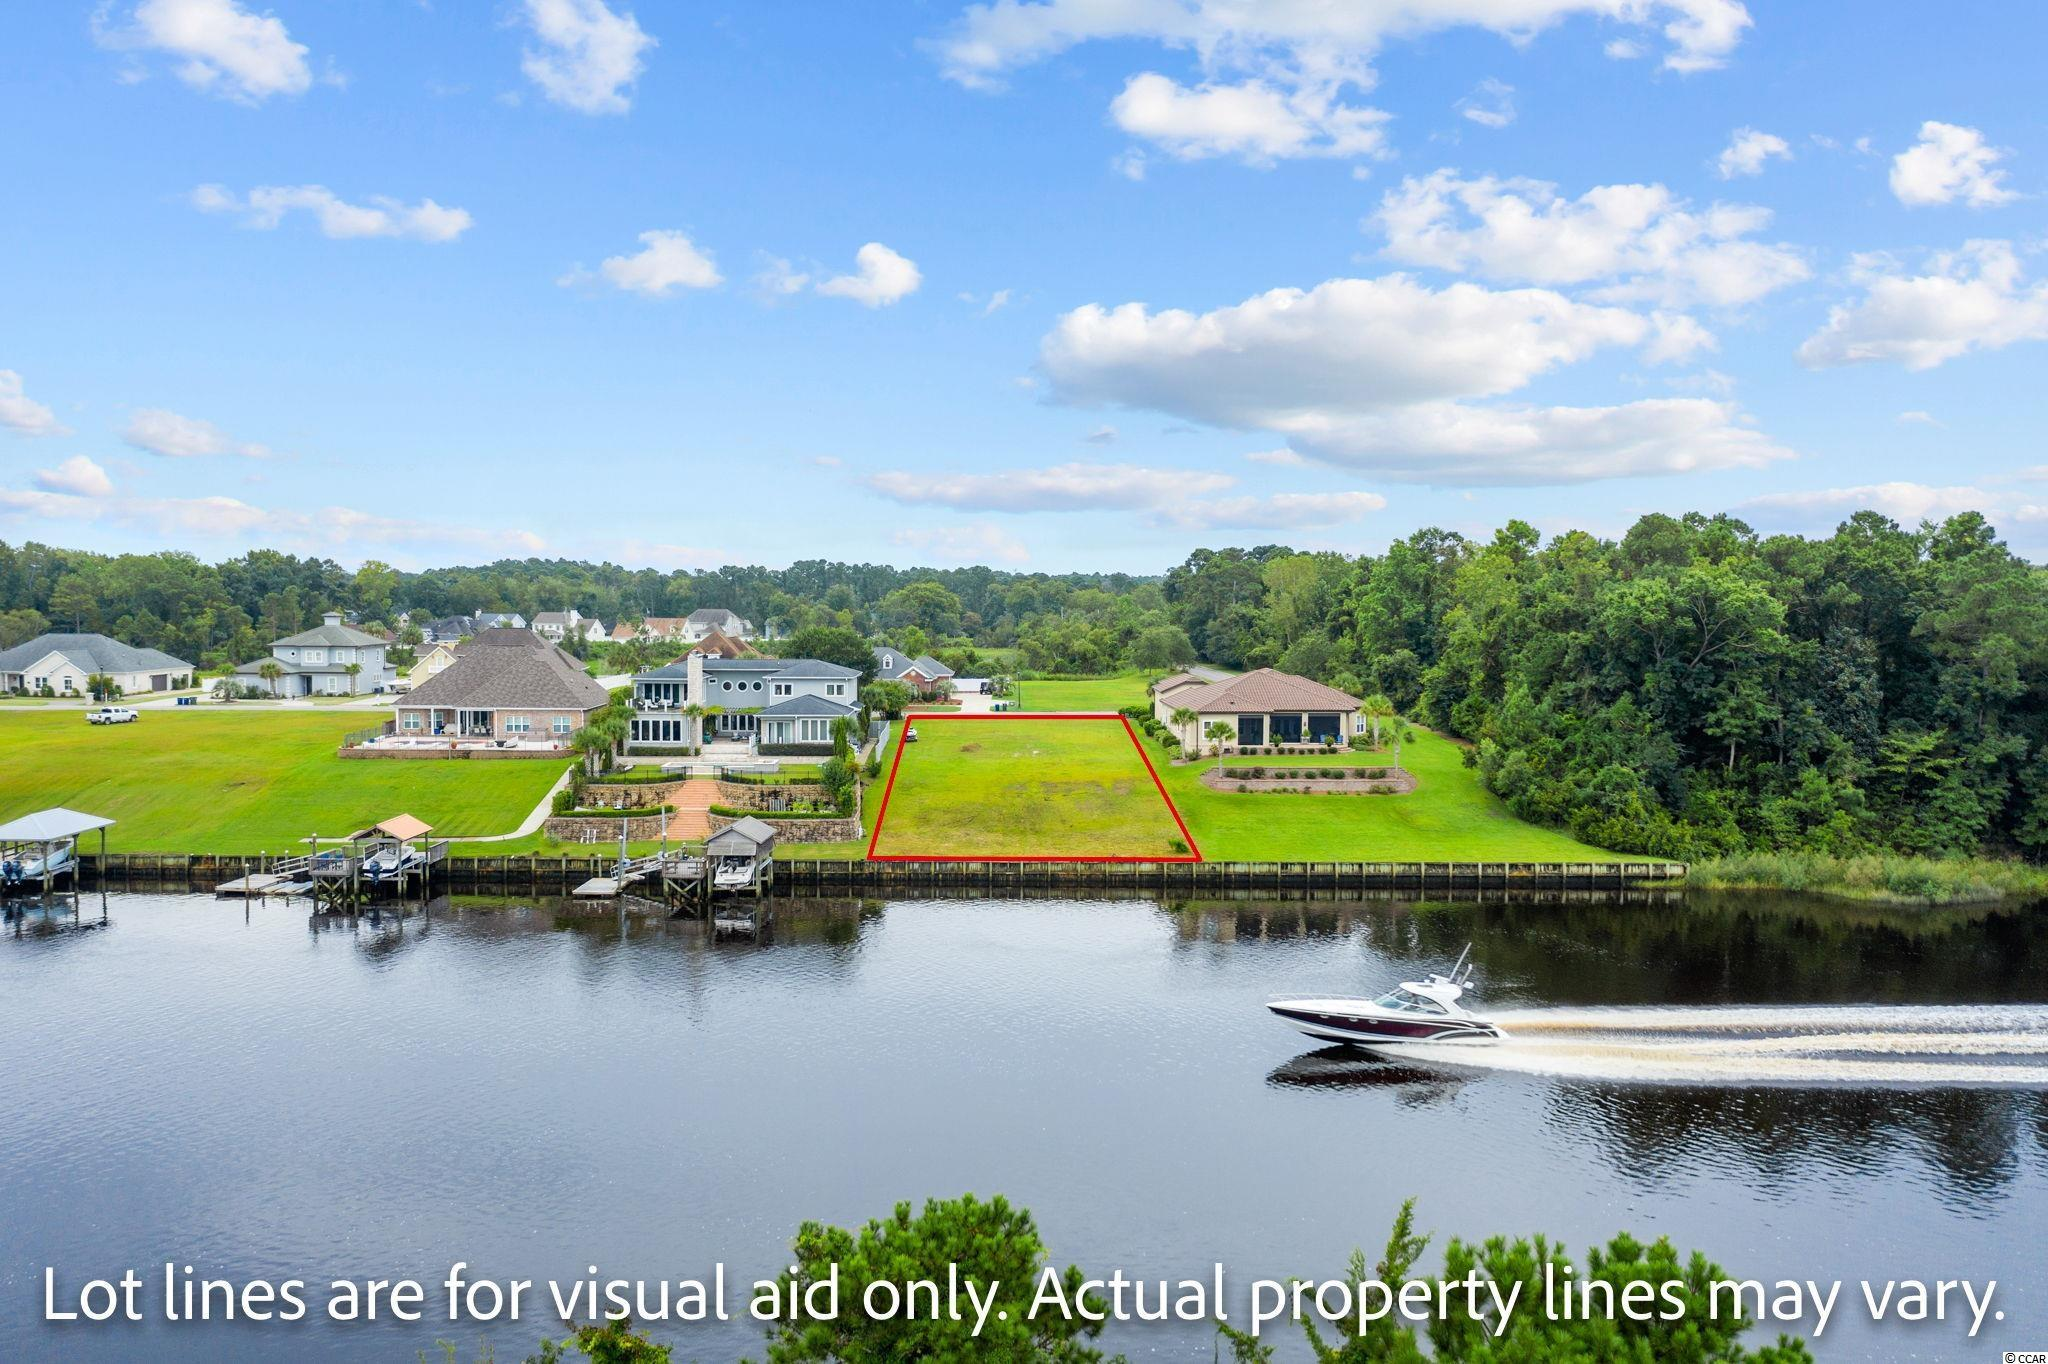 Nestled in the heart of North Myrtle Beach is the location of your future dream home! Incredible opportunity to own in the exclusive subdivision of Coral Landing. Lot is 90' wide, situated high on a bluff overlooking the intracoastal waterway. You do not want to miss this!